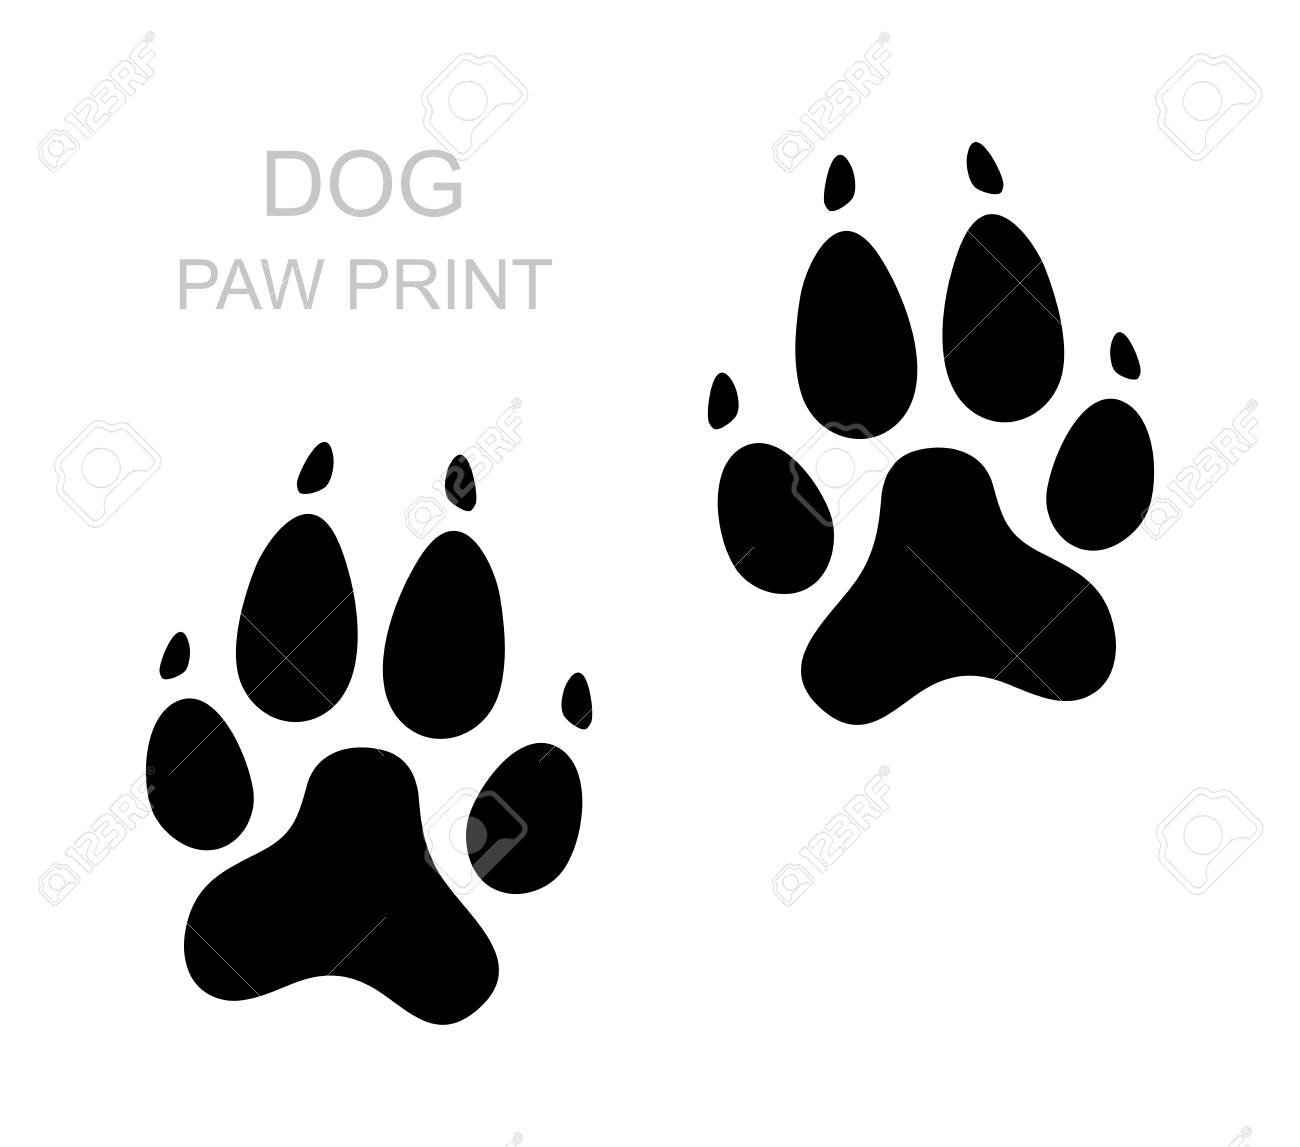 Dog paw. Black silhouette. Foot print. Animal paw isolated on white background. Vector illustration - 91361185